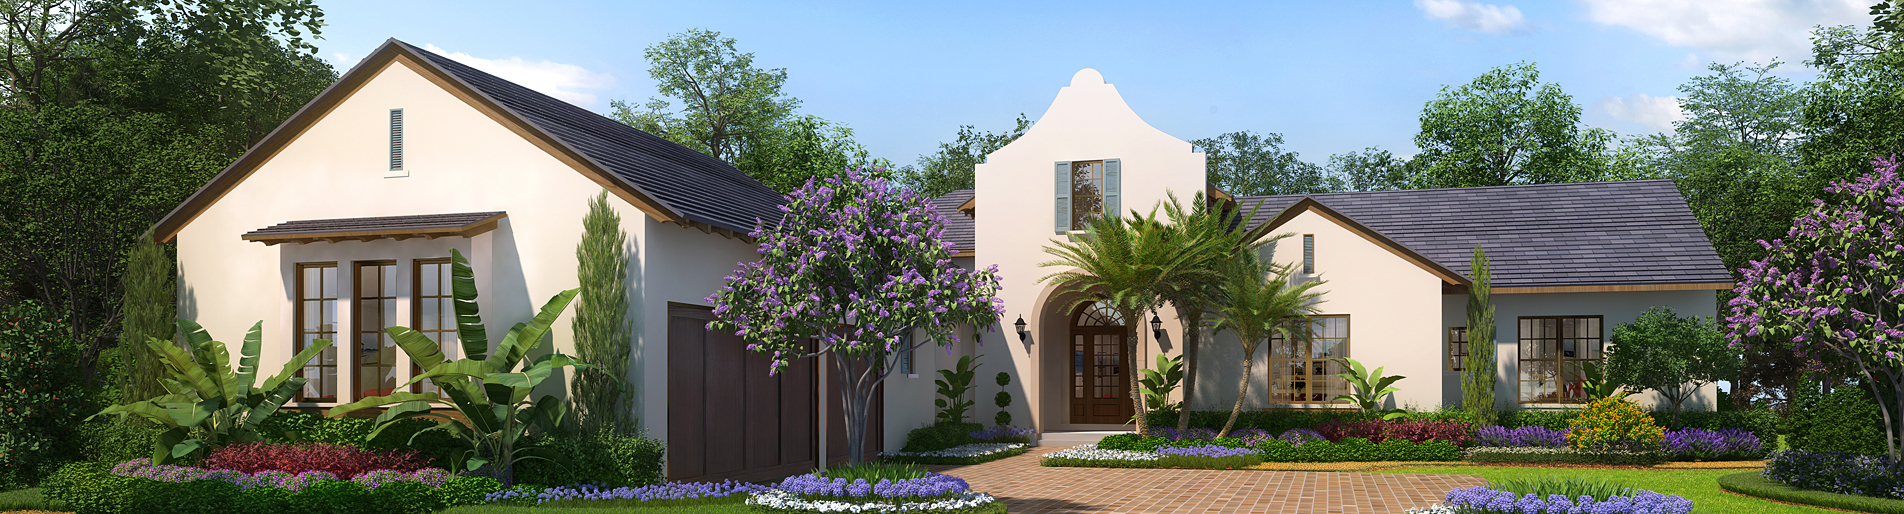 515194 Digital Photorealistic Architectural Rendering of Lake Nona Lot 53 for Issa Homes